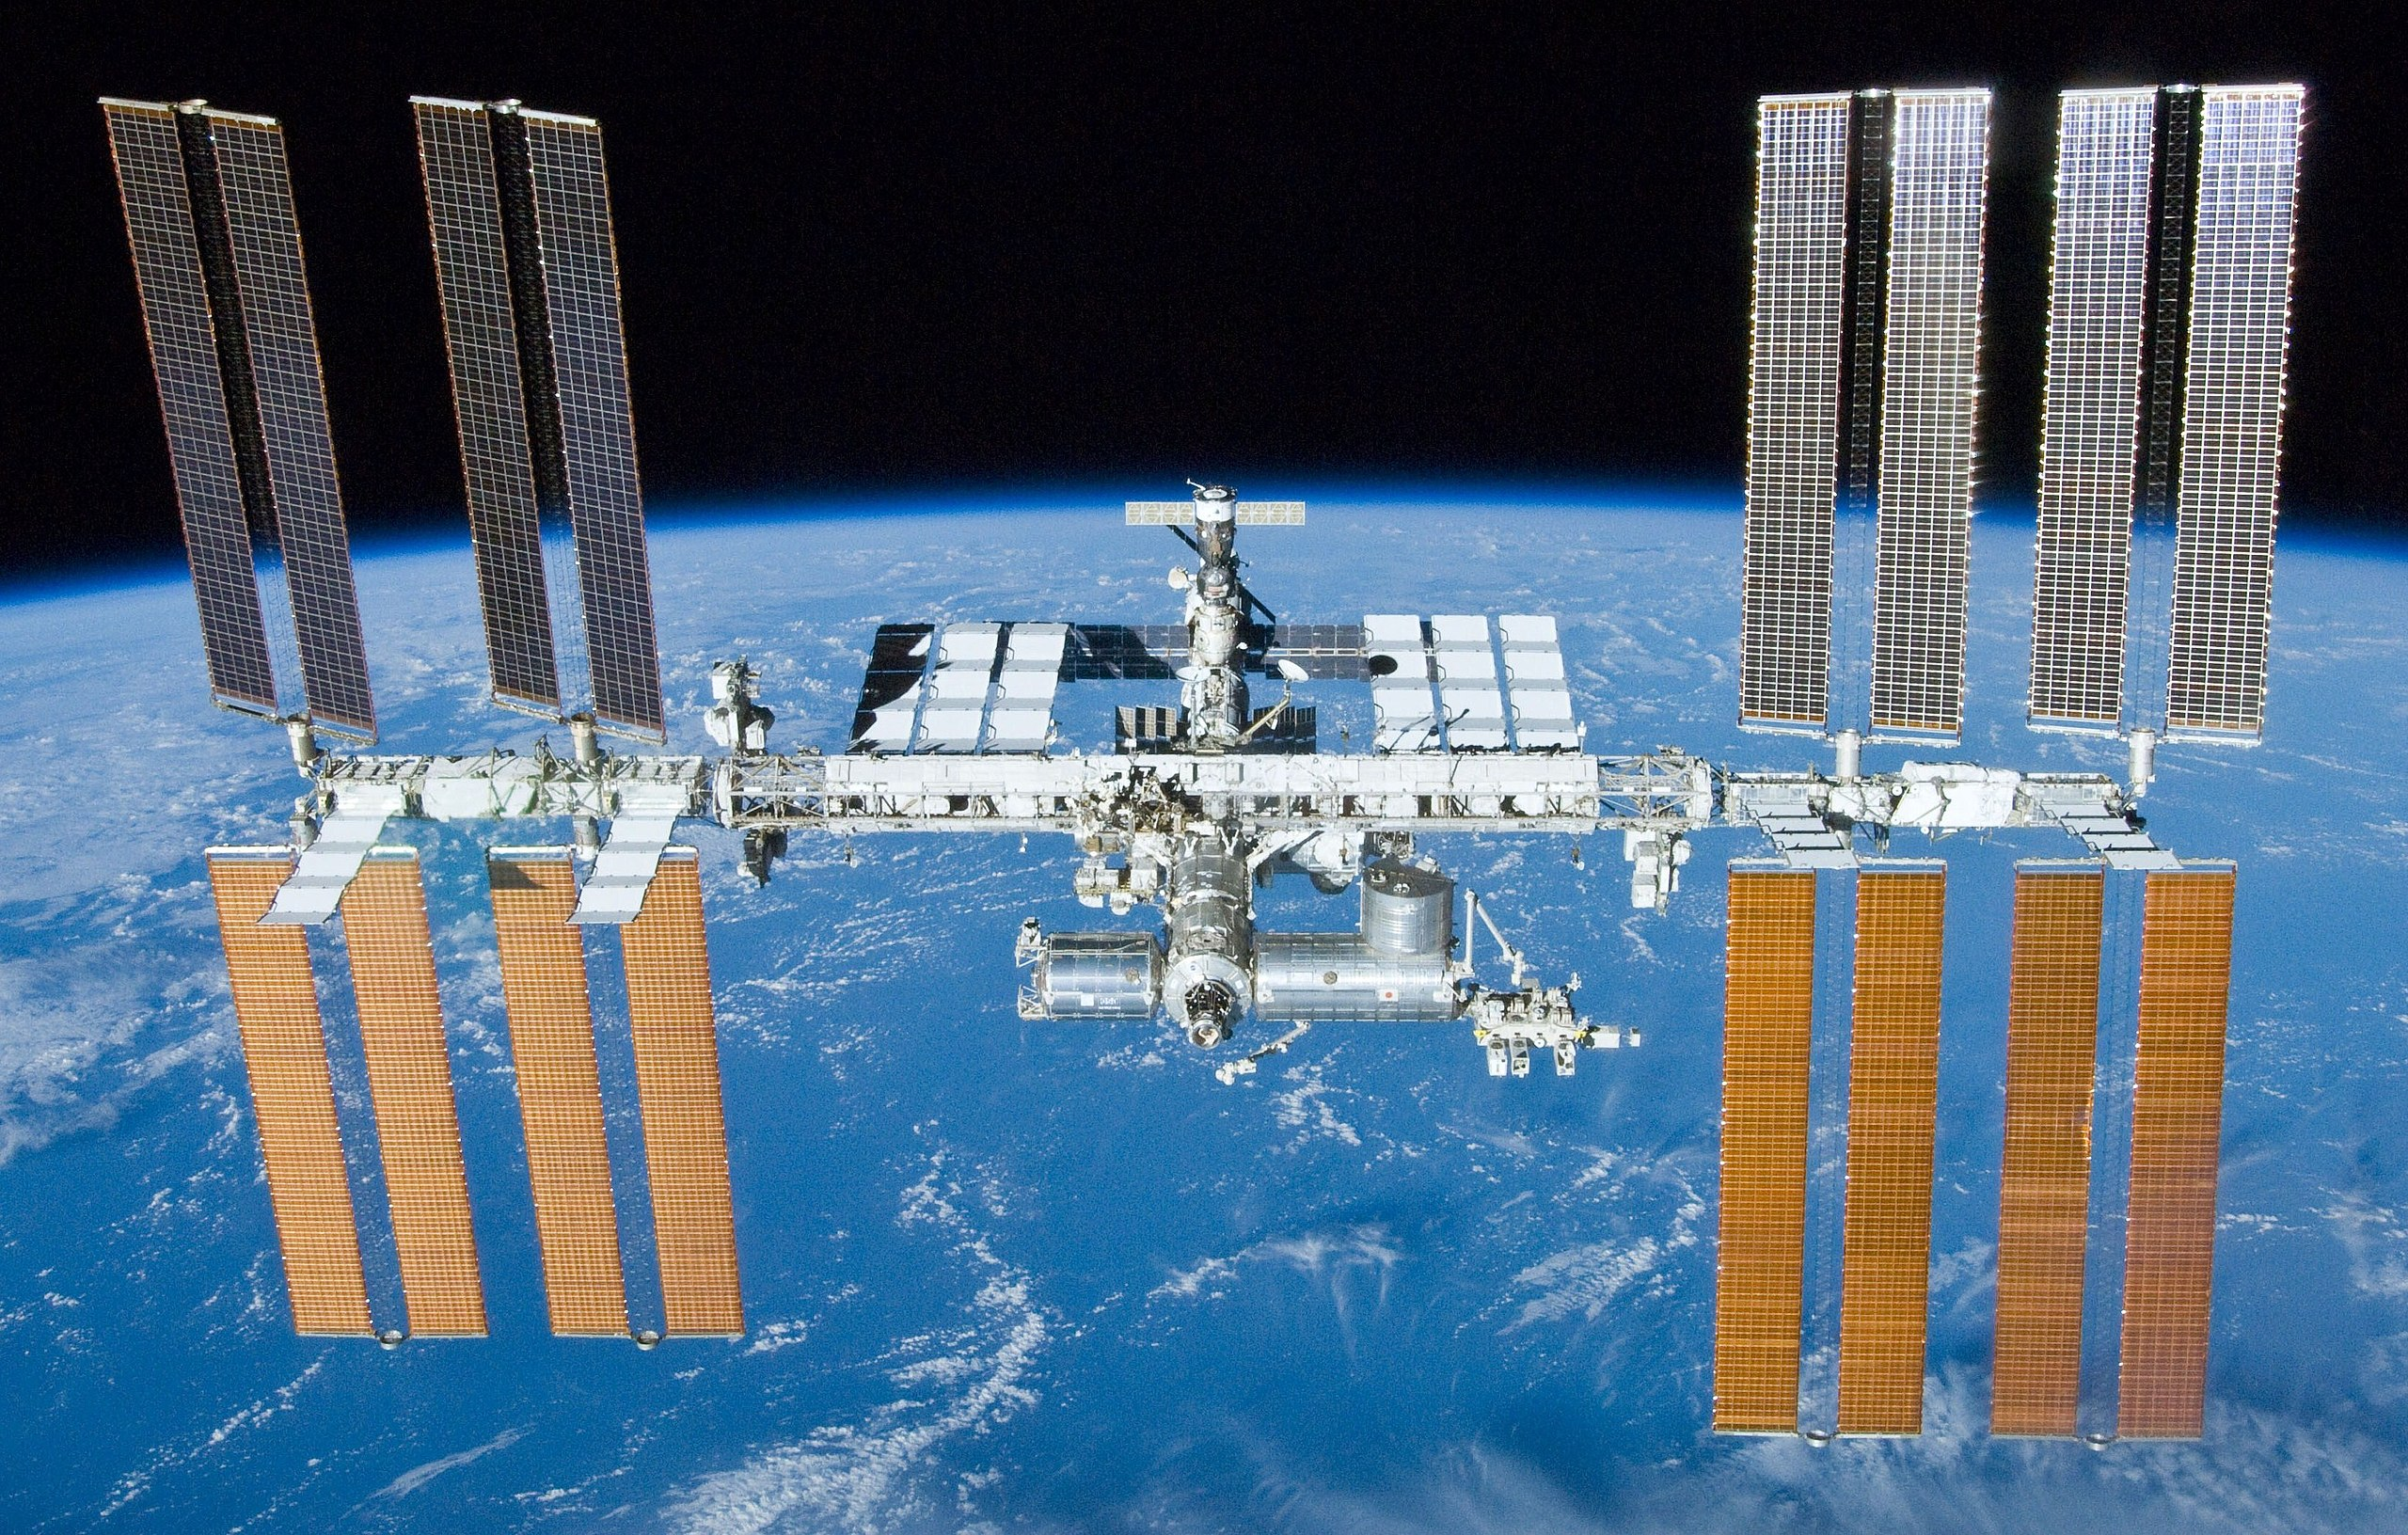 A foreward view of the International Space Station backdropped by the limb of the Earth. In view are the station's four large, maroon-coloured solar array wings, two on either side of the station, mounted to a central truss structure. Further along the truss are six large, white radiators, three next to each pair of arrays. In between the solar arrays and radiators is a cluster of pressurised modules arranged in an elongated T shape, also attached to the truss. A set of blue solar arrays are mounted to the module at the aft end of the cluster.